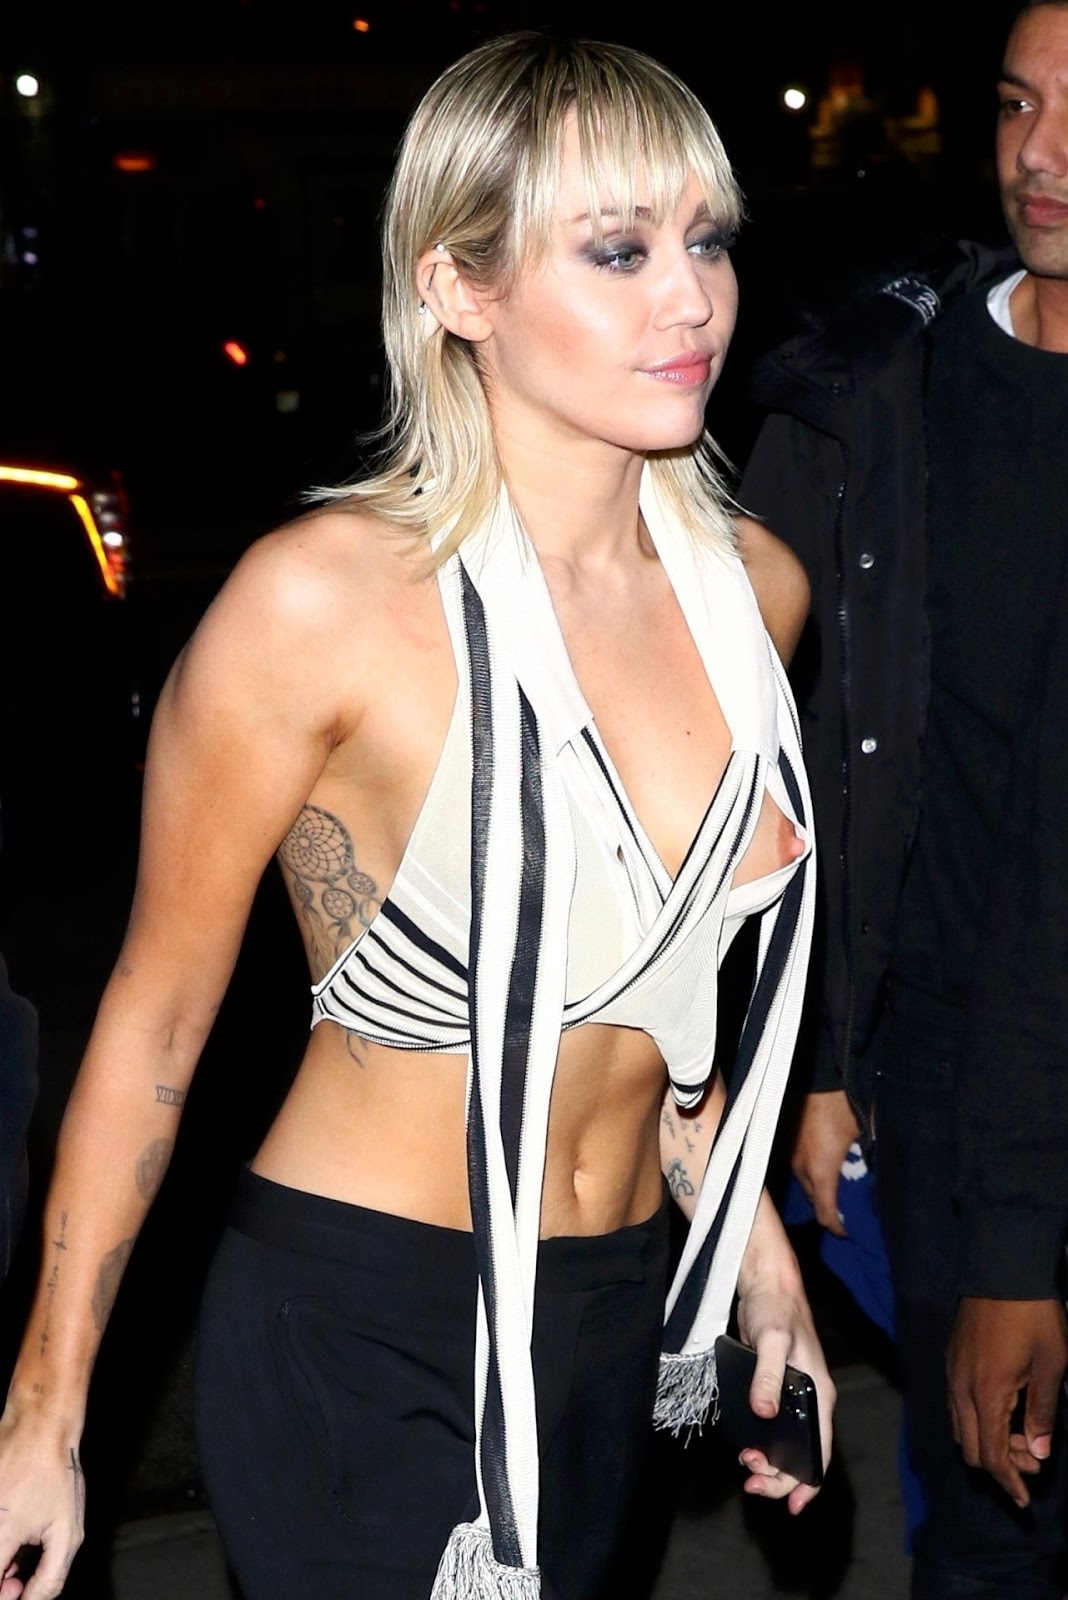 Miley Cyrus suffers wardrobe malfunction after runway moment at New York Fashion Week